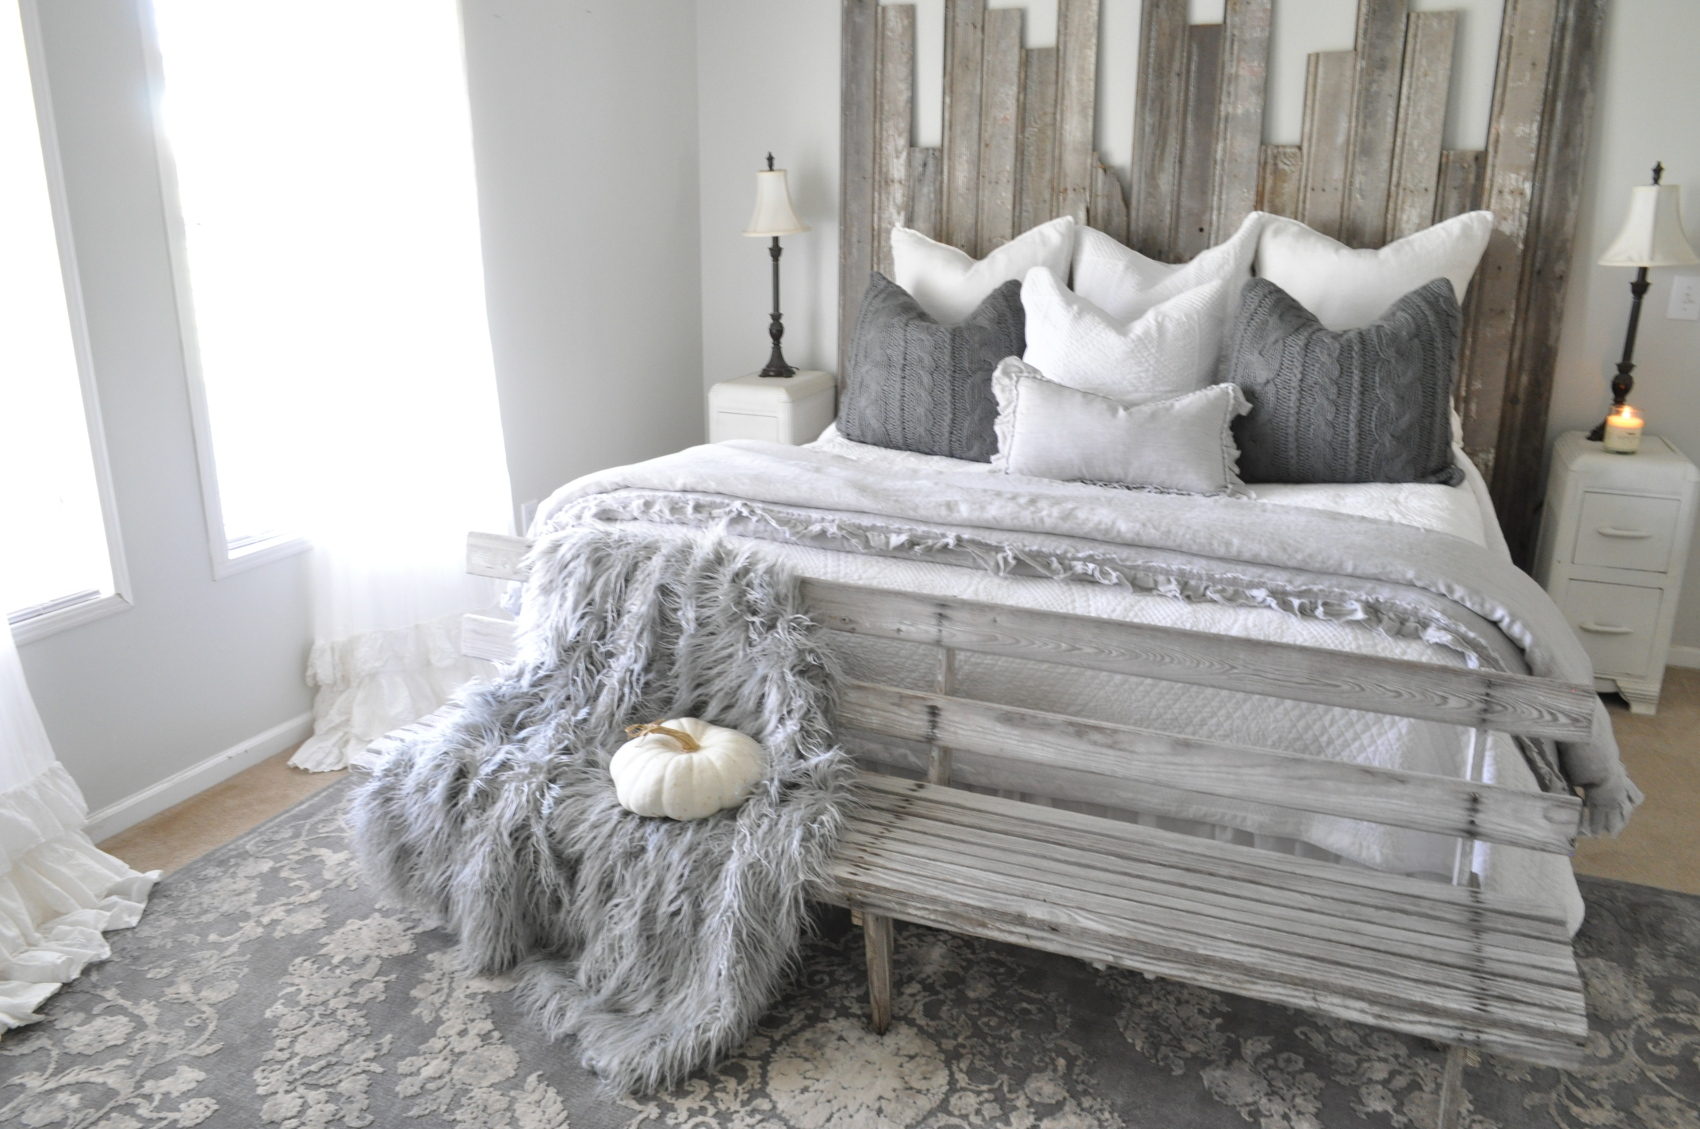 Awesome Pom Pom At Home Has A Beautiful Selection Of Duvets And Coverlets. I Love  To Add Layers During The Colder Months.